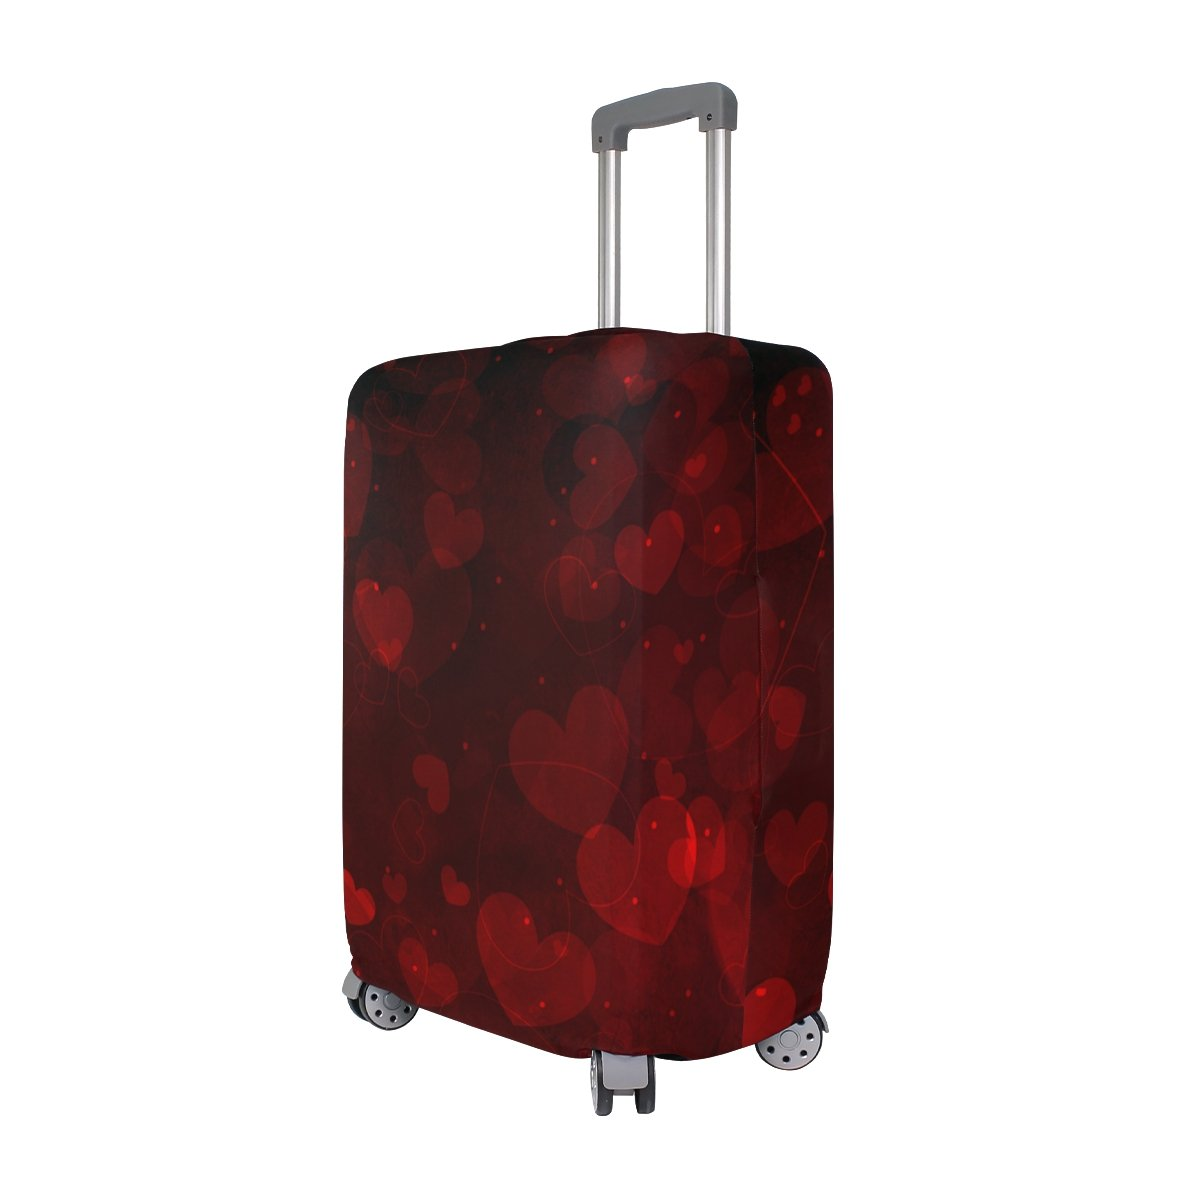 ALAZA Hearts Valentine's Day Wedding Luggage Cover Fits 30-32 Inch Suitcase Spandex Travel Protector XL by ALAZA (Image #2)